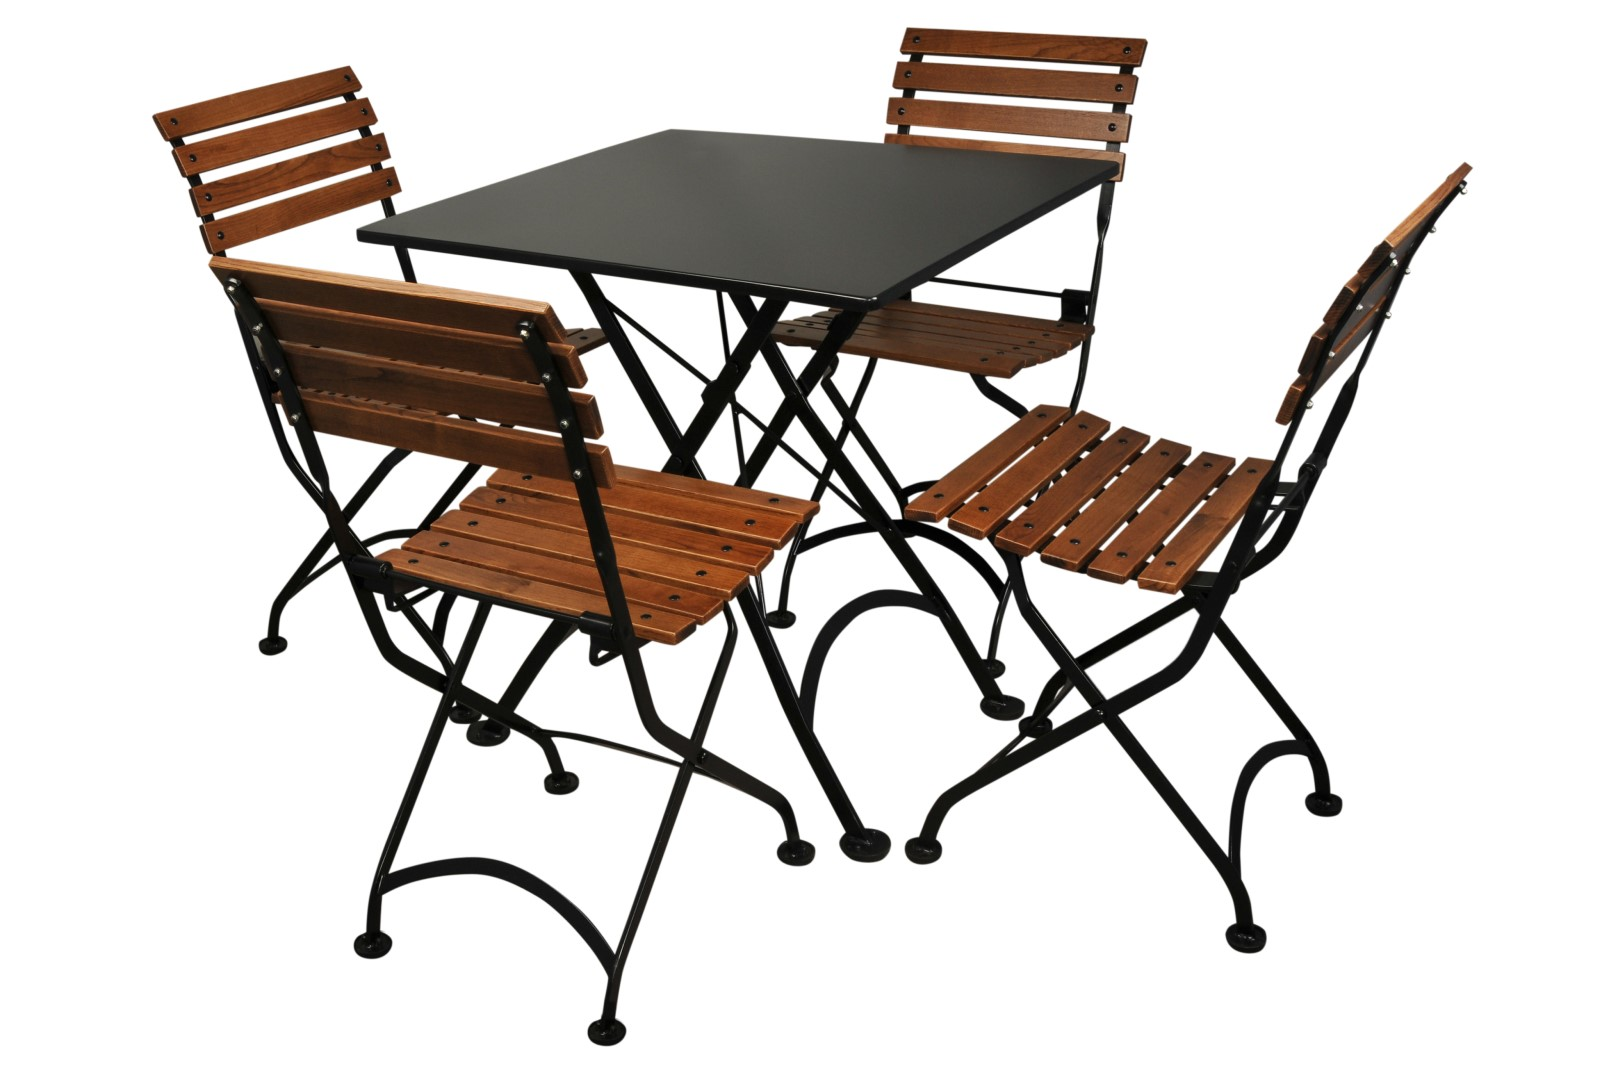 4113S-BK Table and 5504CW-BK Chairs